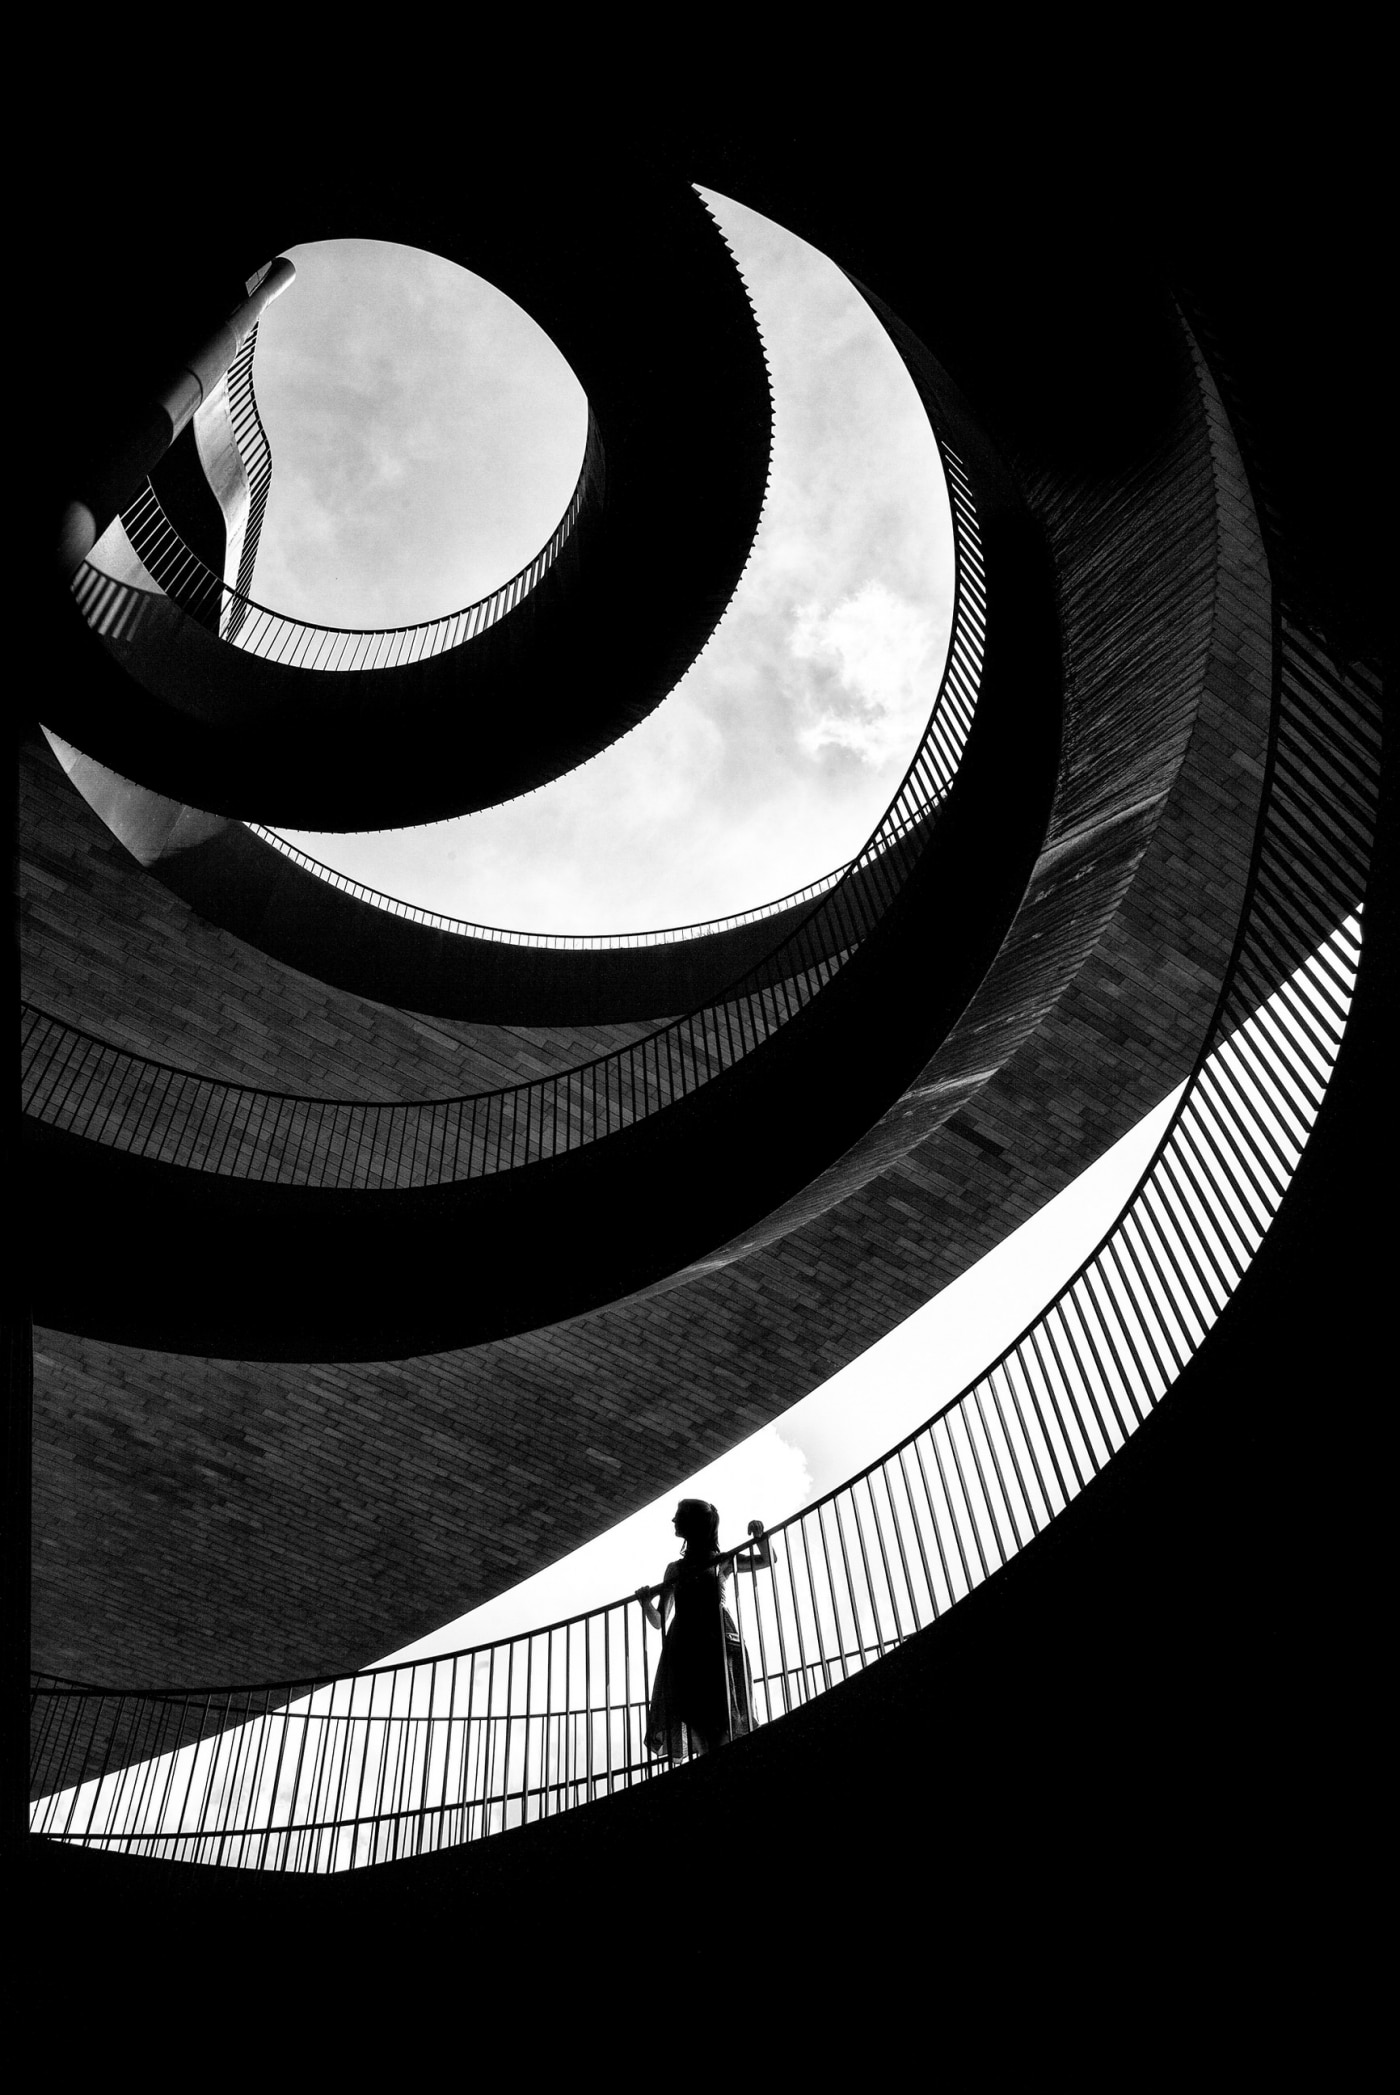 Alan Schaller black and white photography